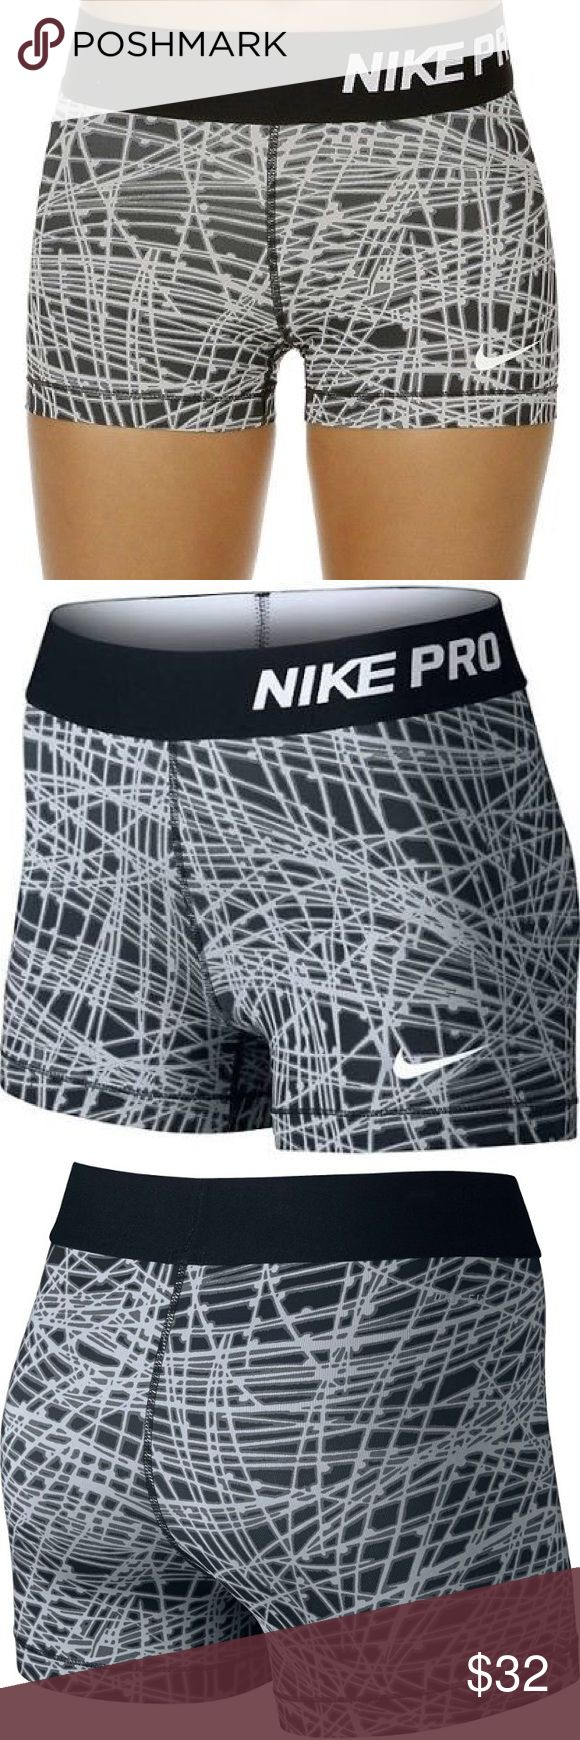 """Nike Pro 3 cool shorts NWT Nike Pro 3 cool shorts. Dri fit with 3"""" inseam. NO TRADES PLEASE! Nike Shorts"""